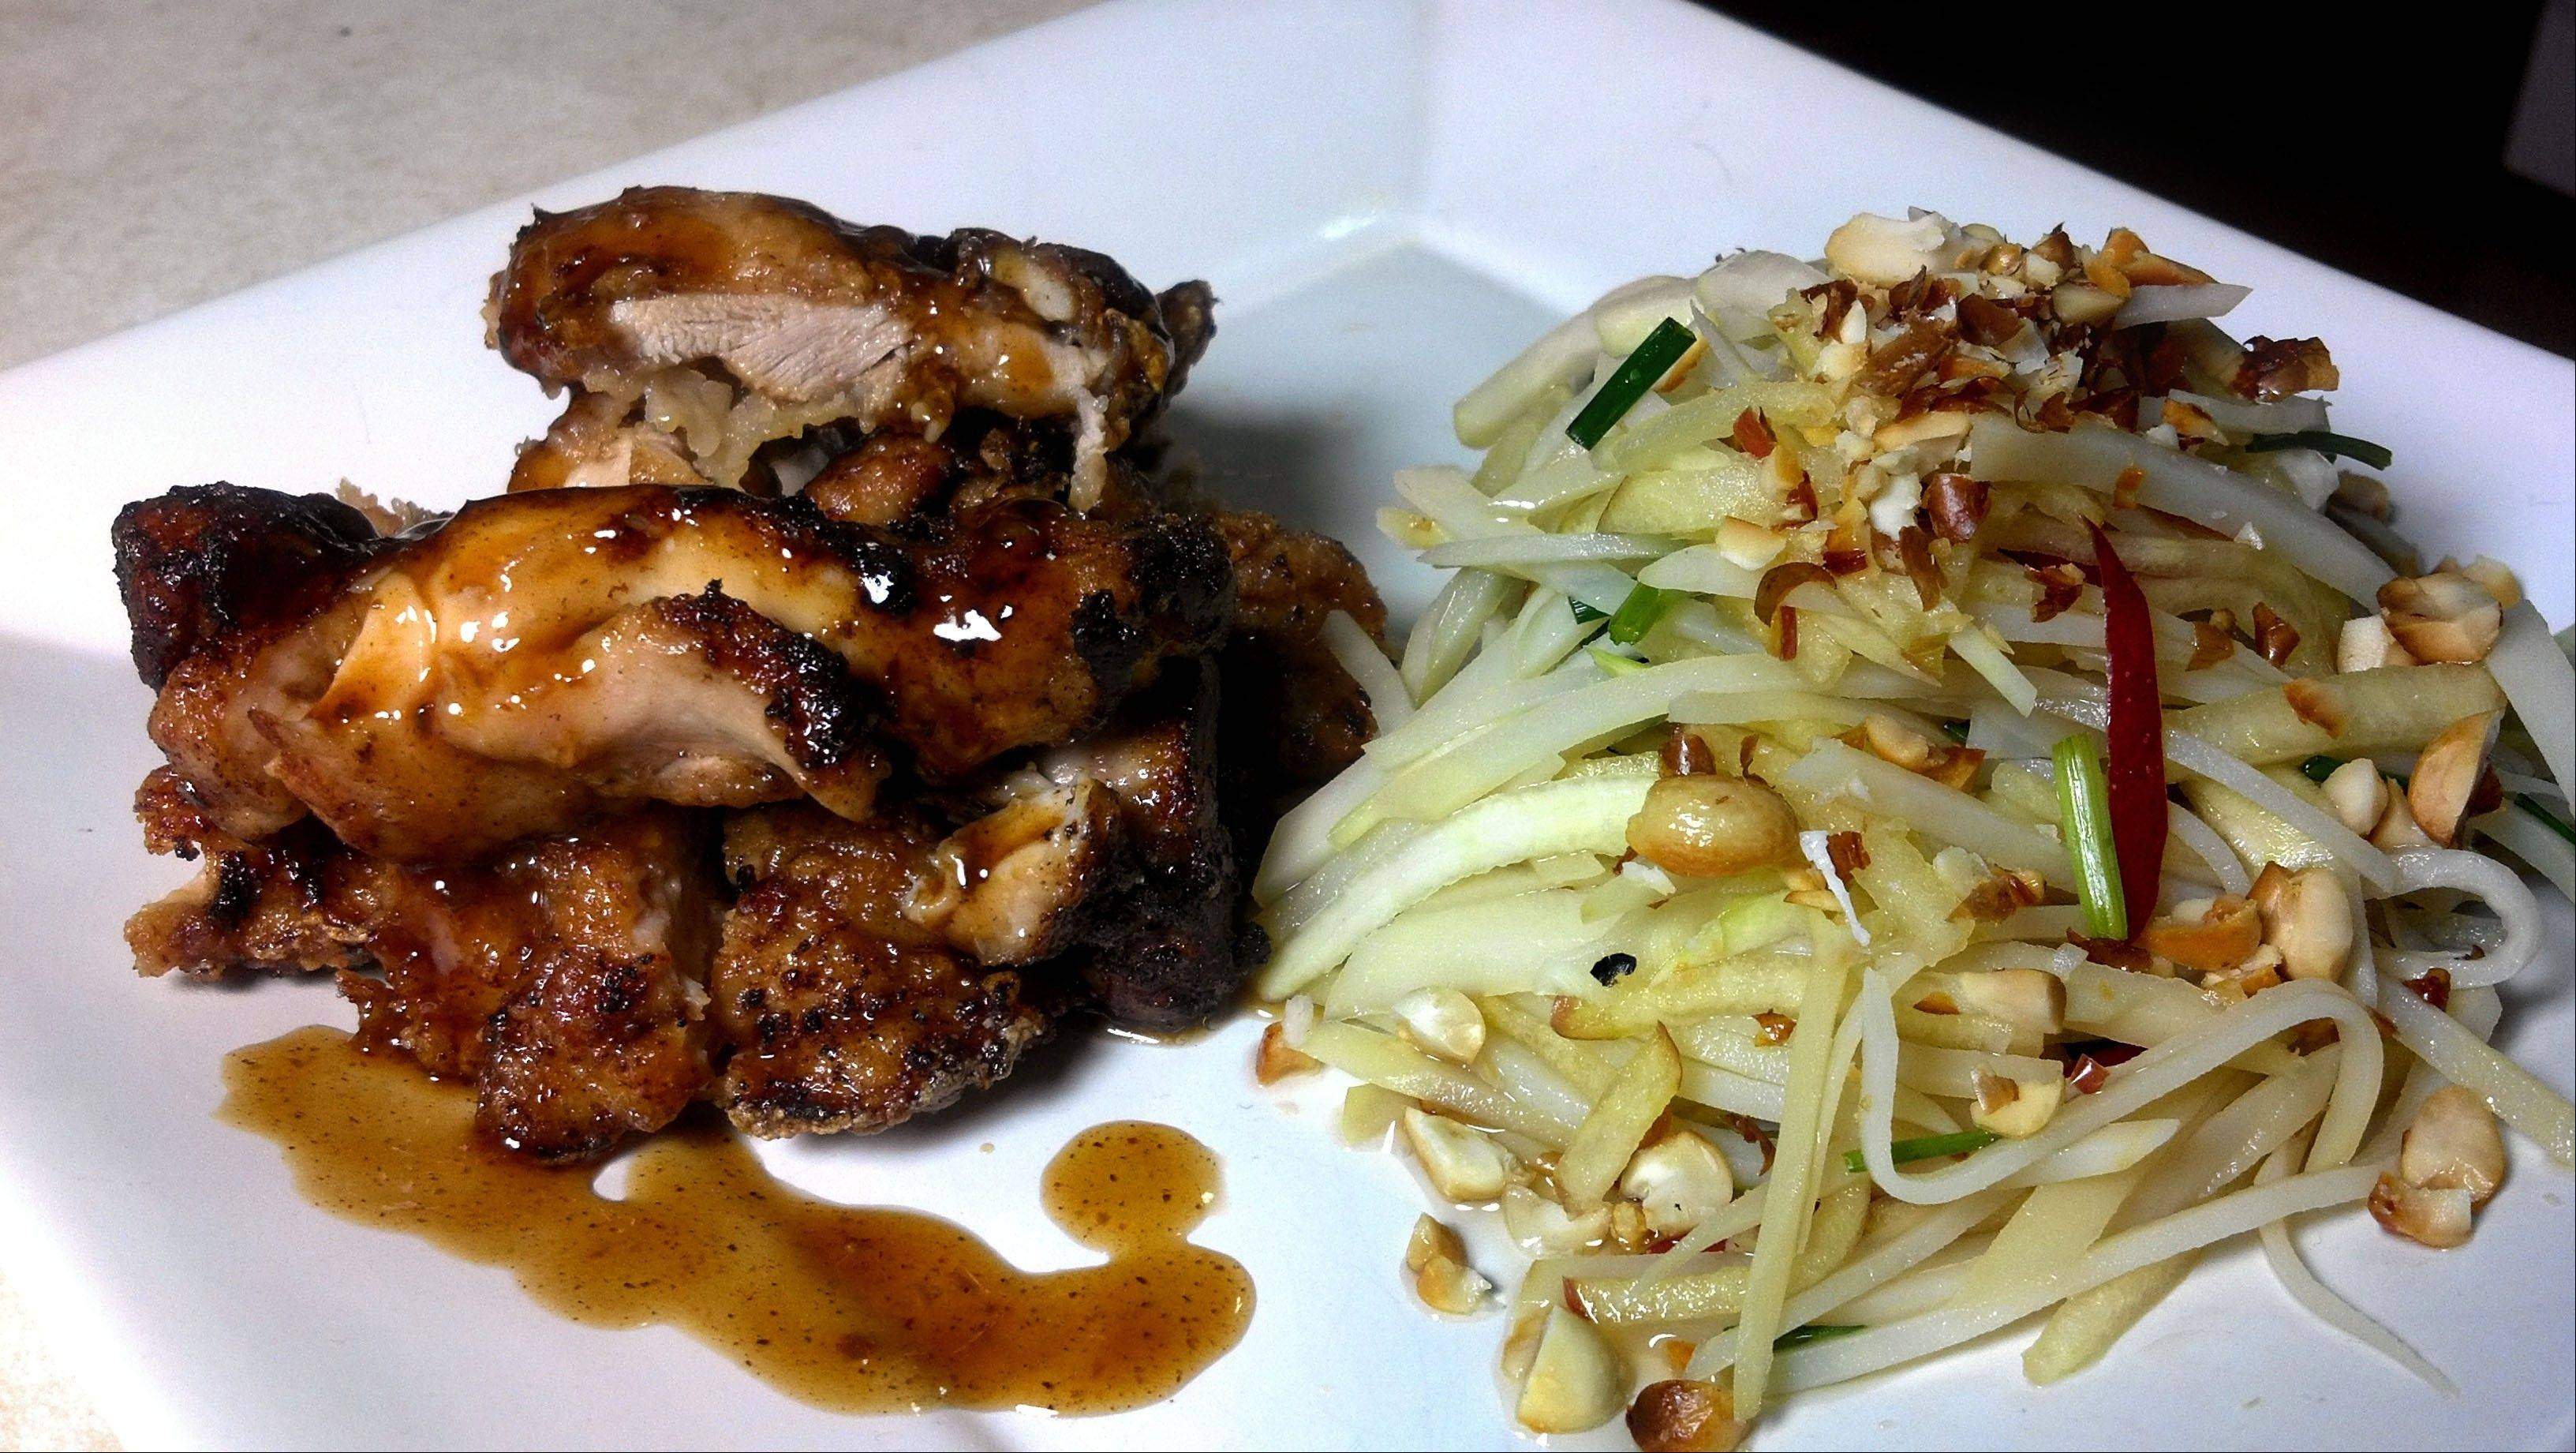 Crispy Pan-fried Chicken Thighs with Asian Potato Salad